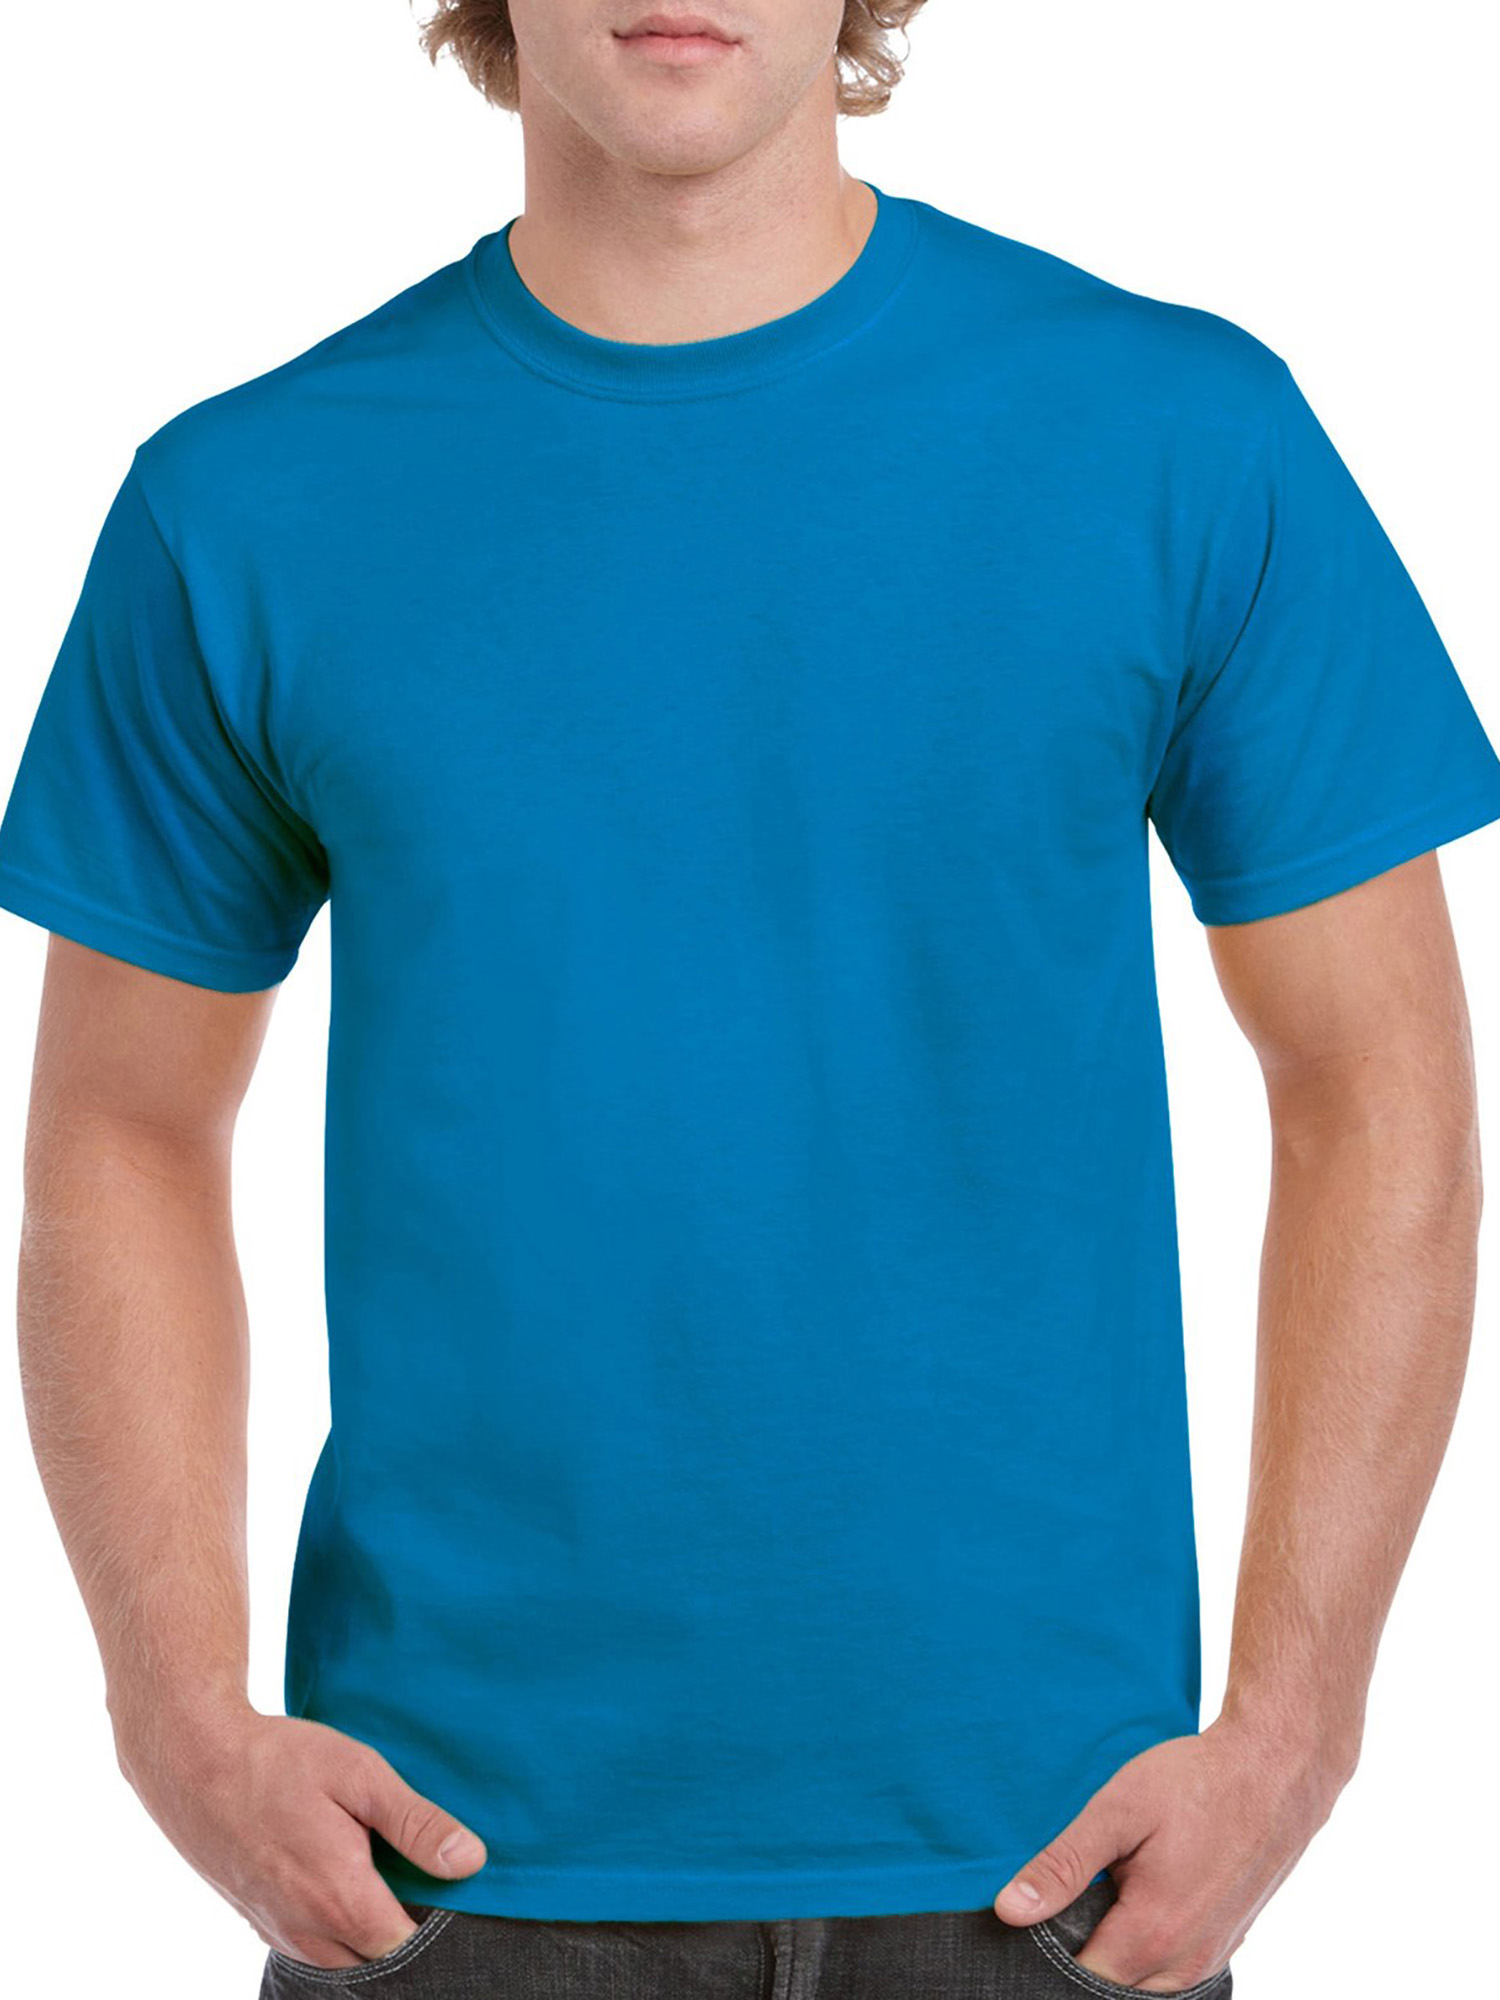 Big Mens Classic Short Sleeve T-Shirt, 2XL